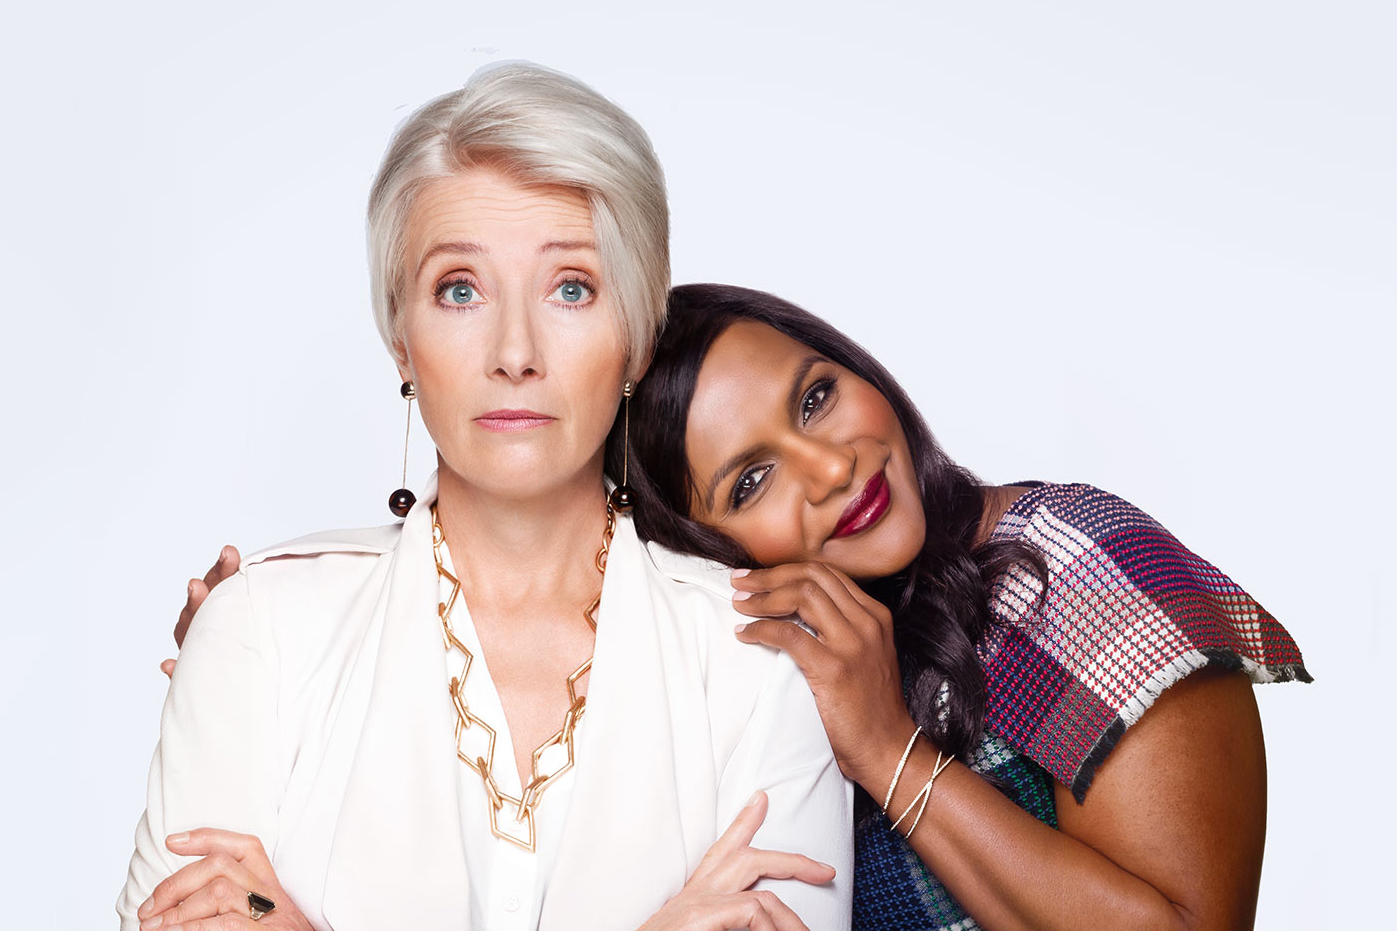 an older white woman and an Indian woman embrace in Late Night